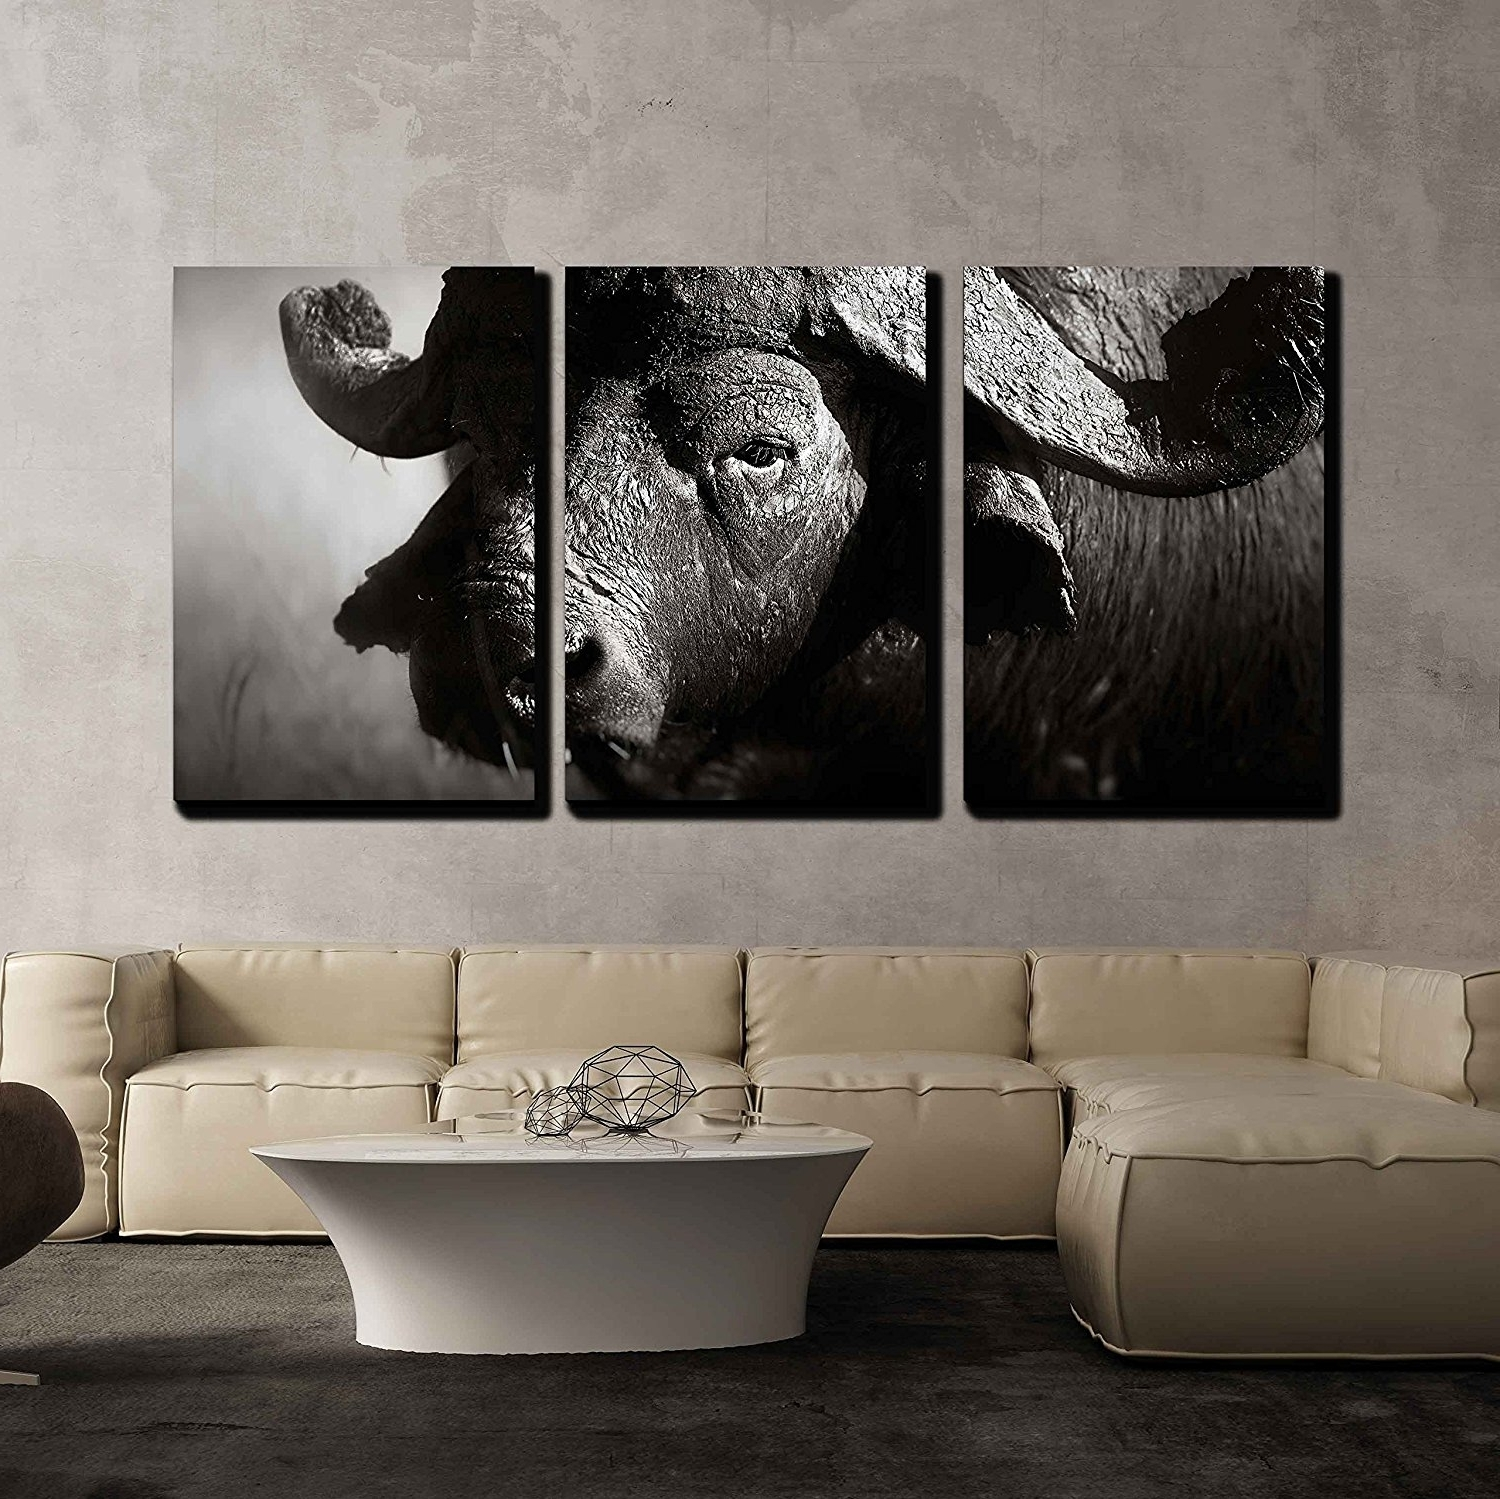 Wall26 – Art Prints – Framed Art – Canvas Prints – Greeting Inside Current South Africa Framed Art Prints (View 14 of 15)